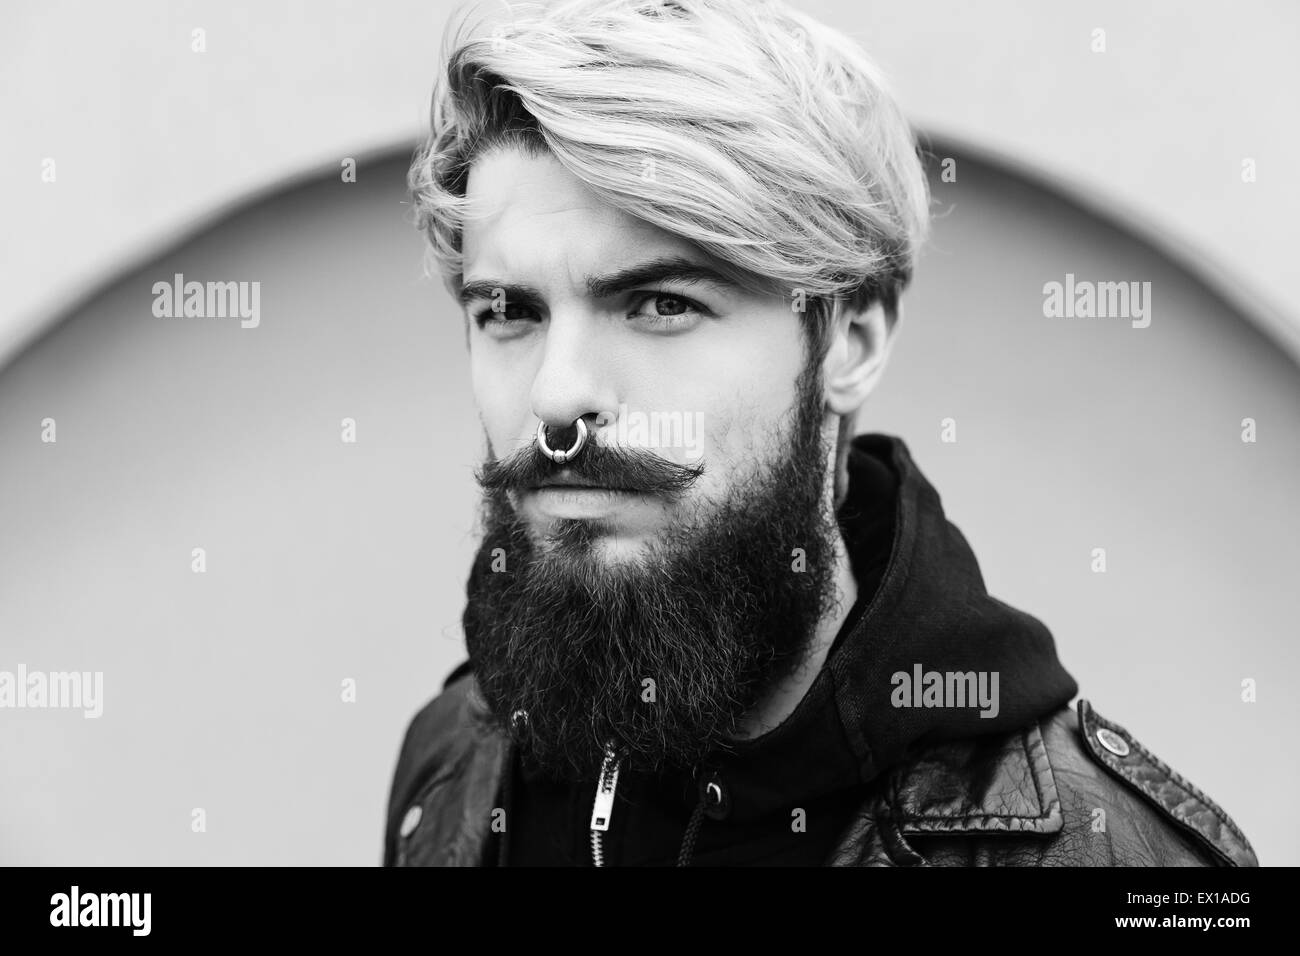 Bearded hipster with nose ring in leather jacket - Stock Image